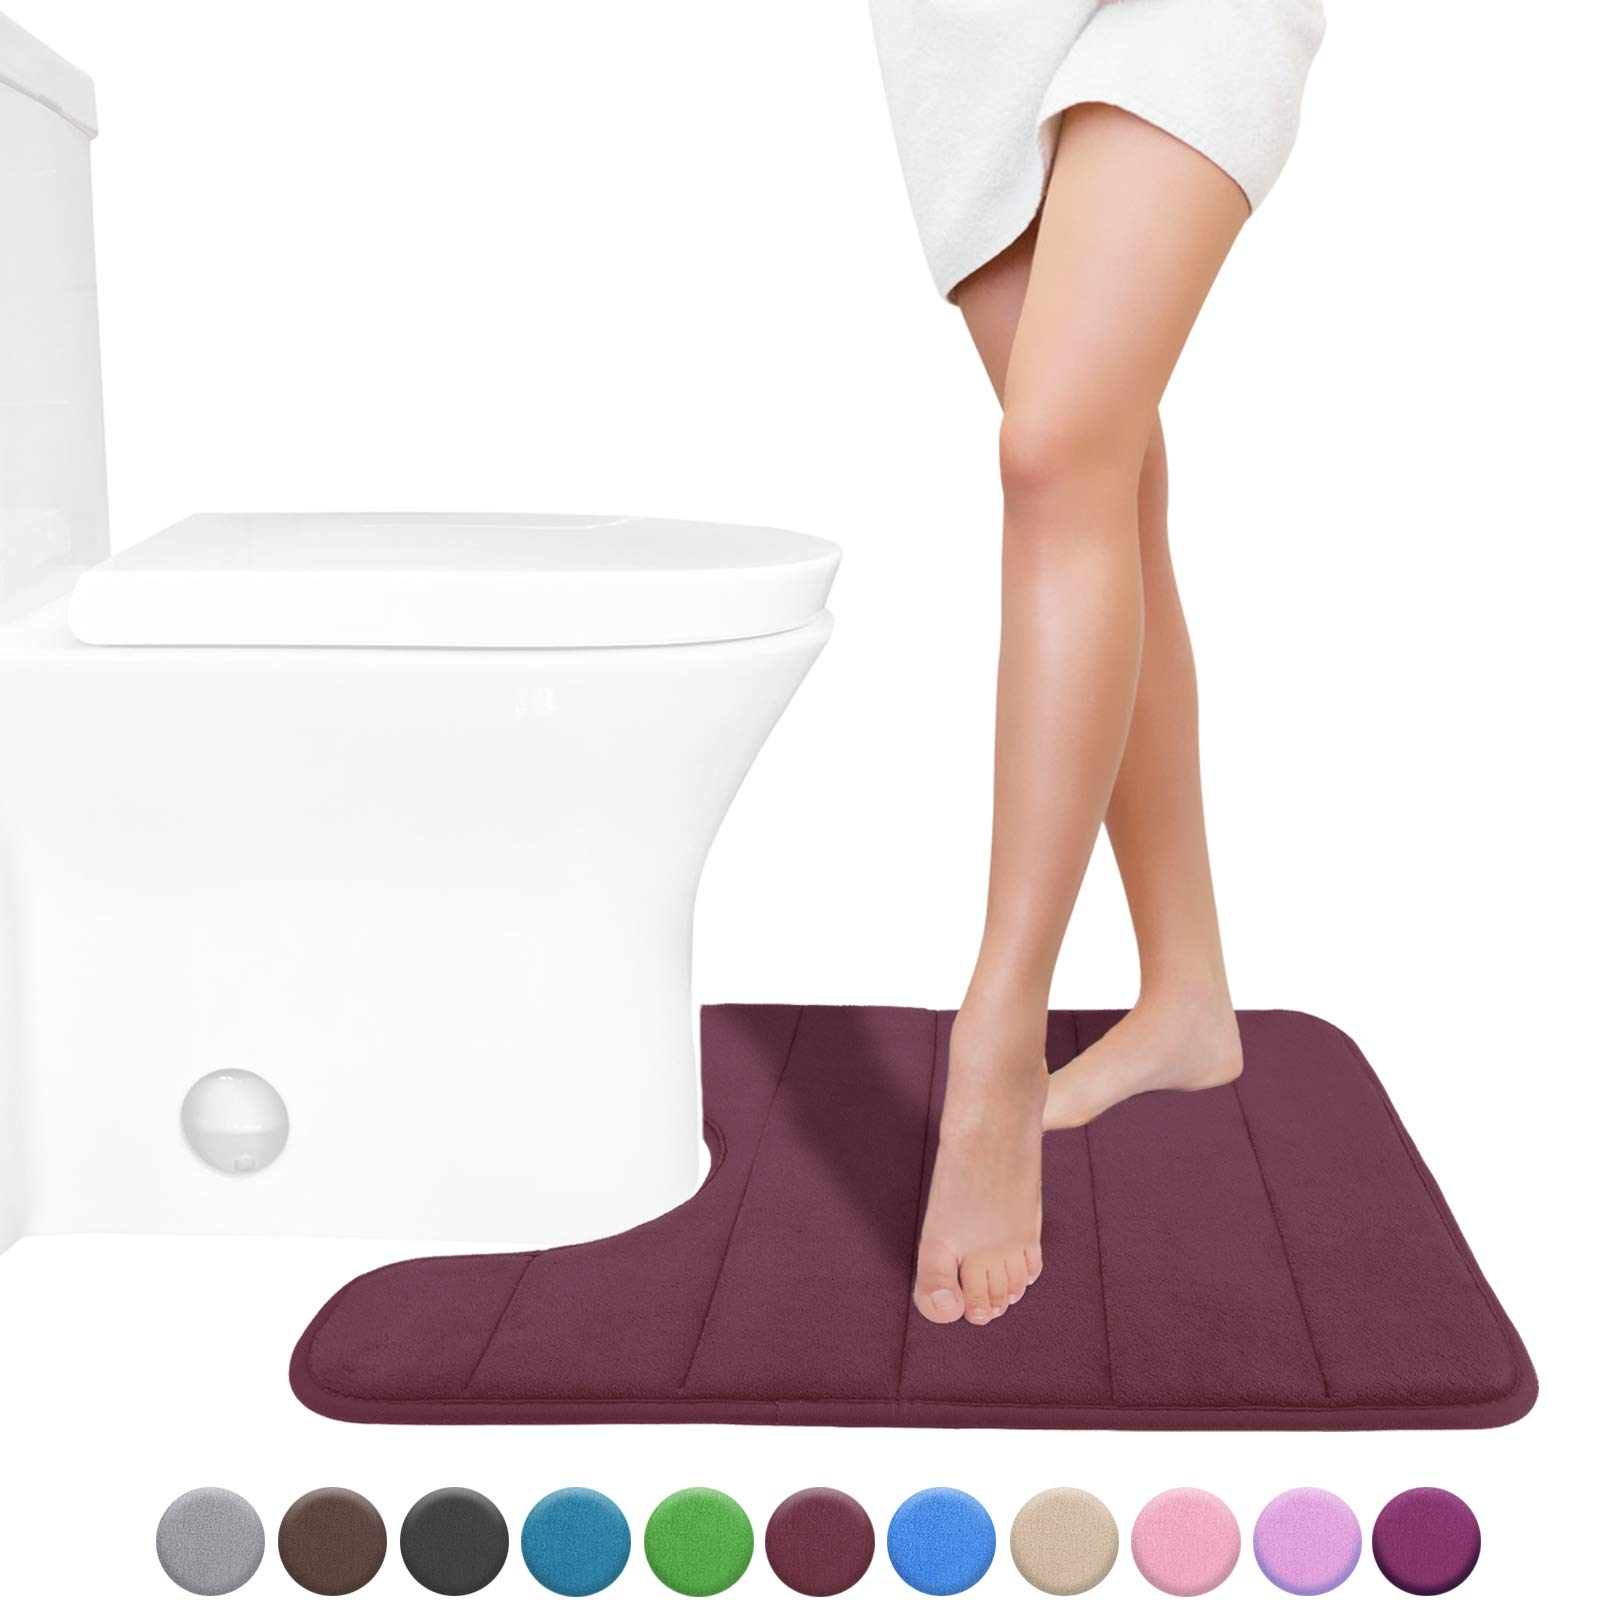 Yimobra Memory Foam Toilet Bath Mat U-Shaped, Soft and Comfortable, Water Absorption, Non-Slip, Thick, Machine Wash and Easier to Dry for Bathroom Commode Contour Rug, 24 X 20 Inches, Potent Purple